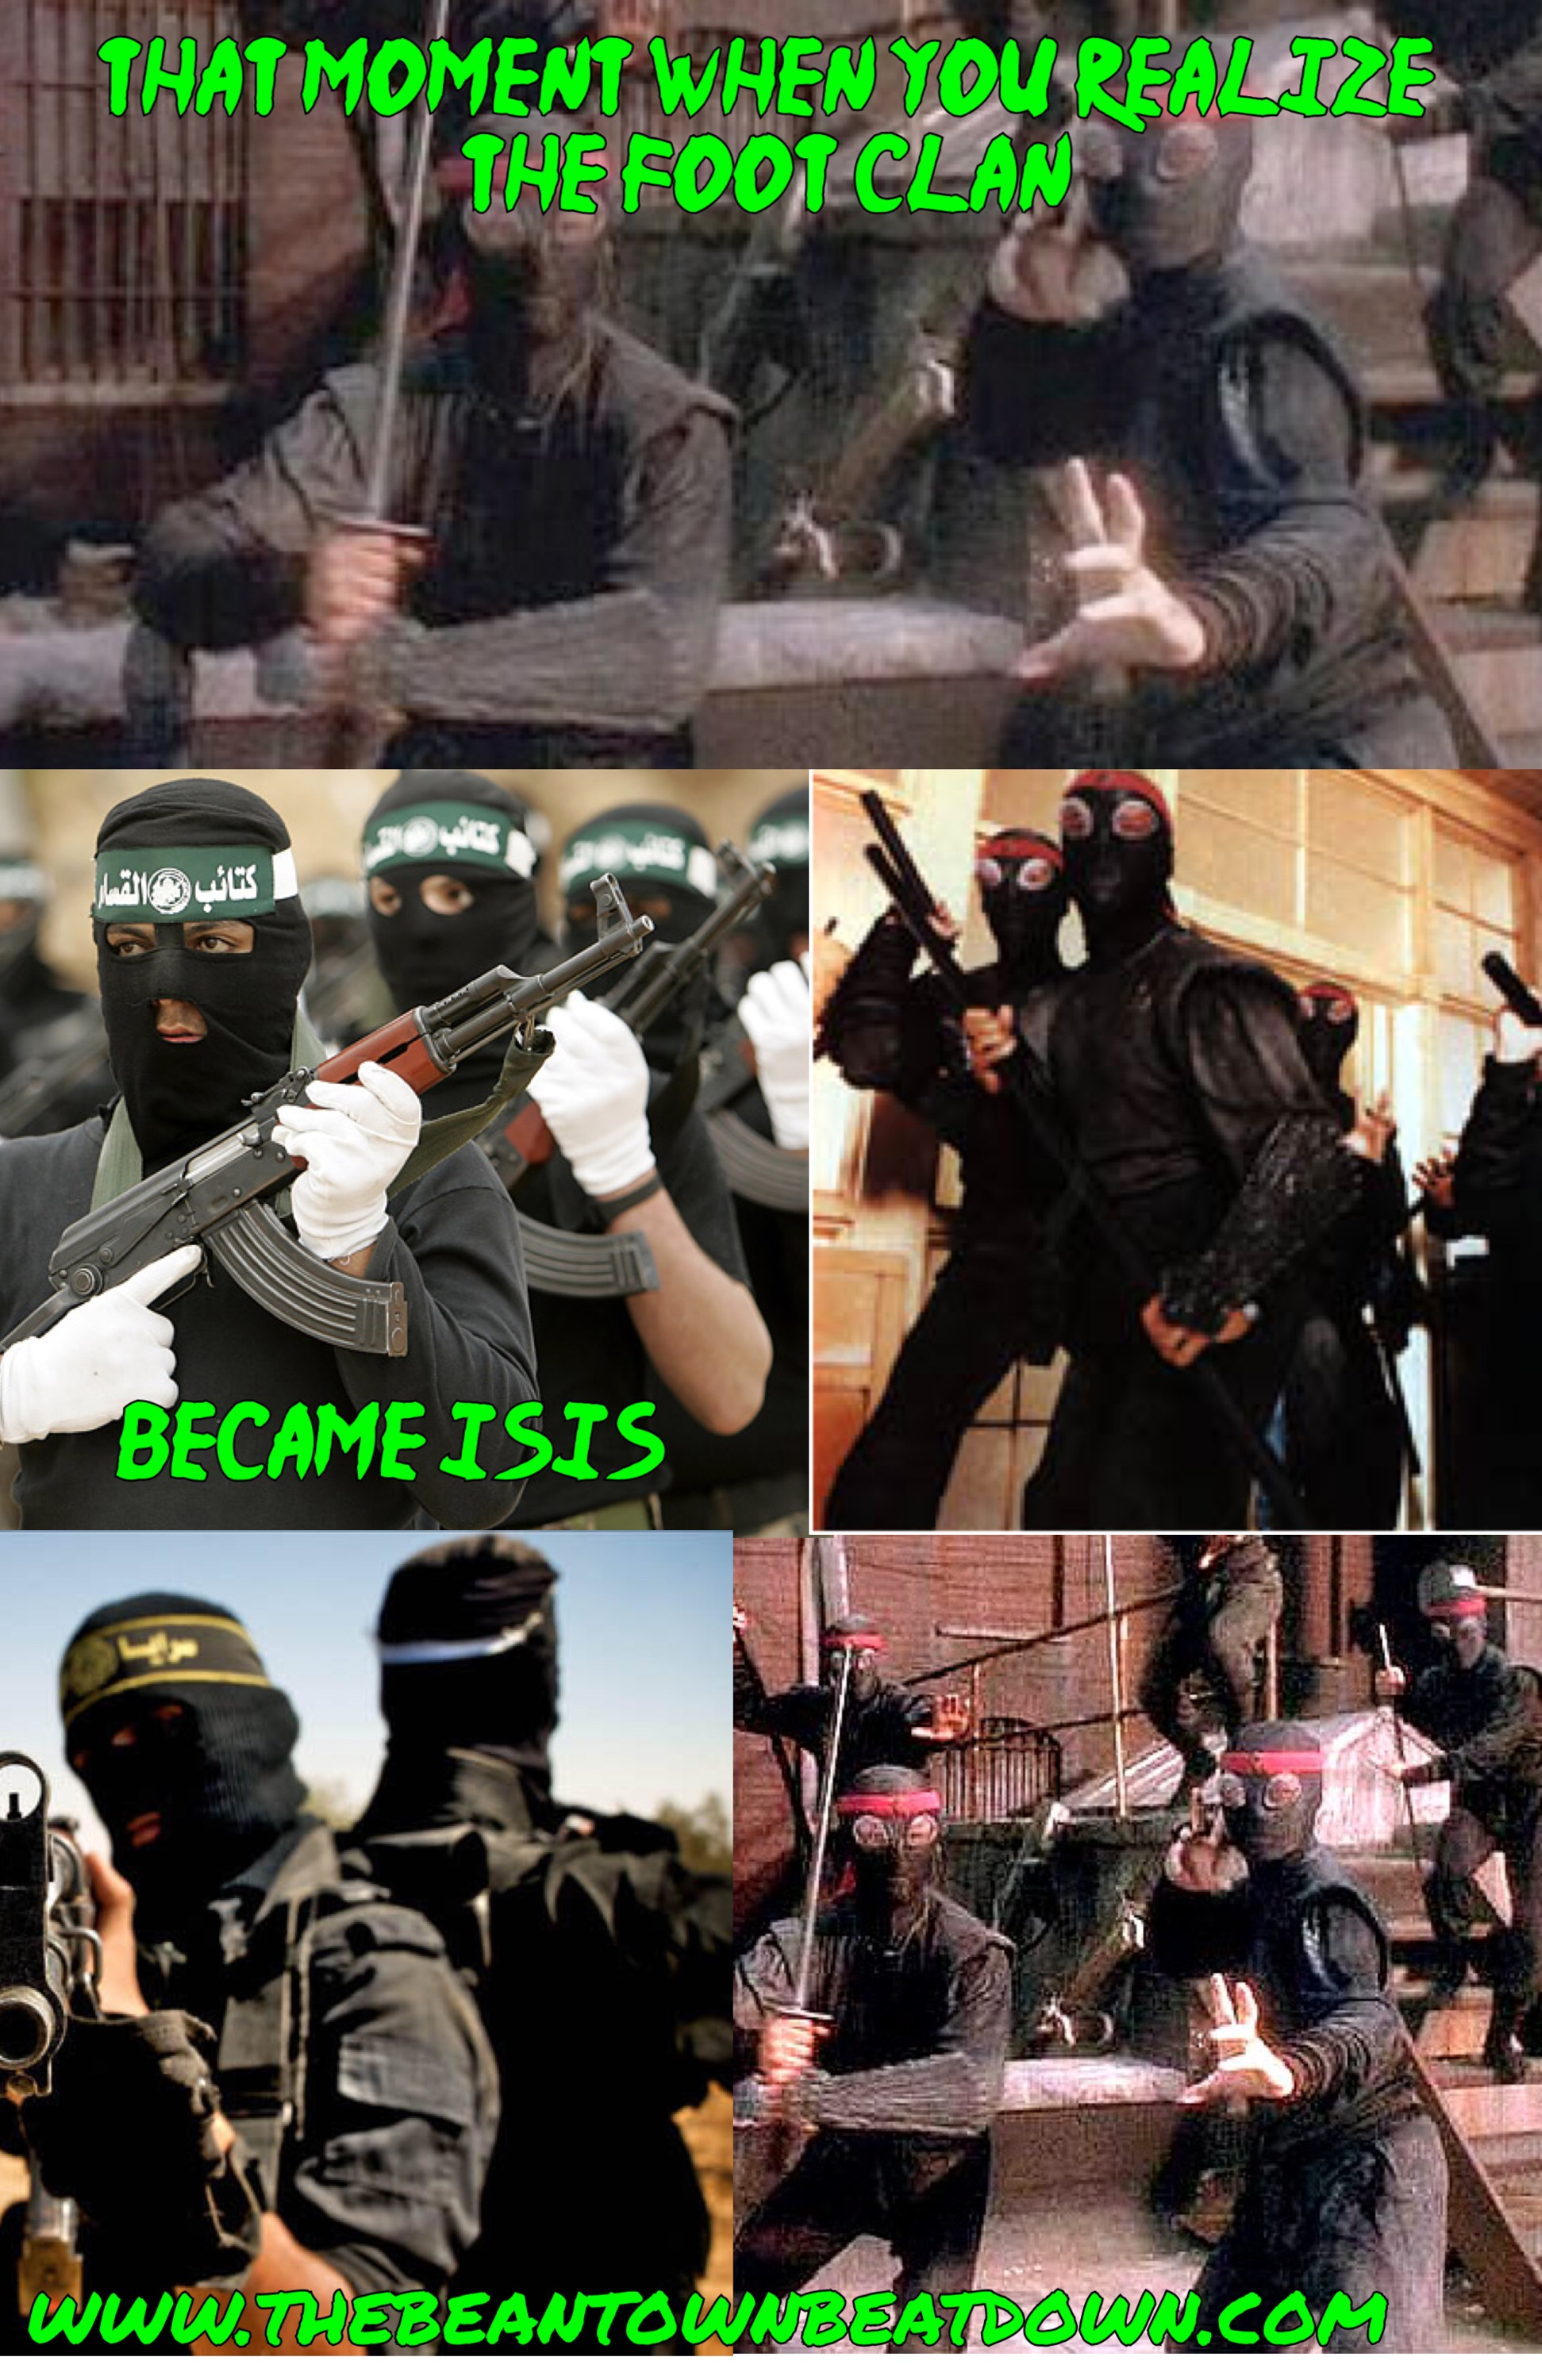 the Foot Clan is ISIS